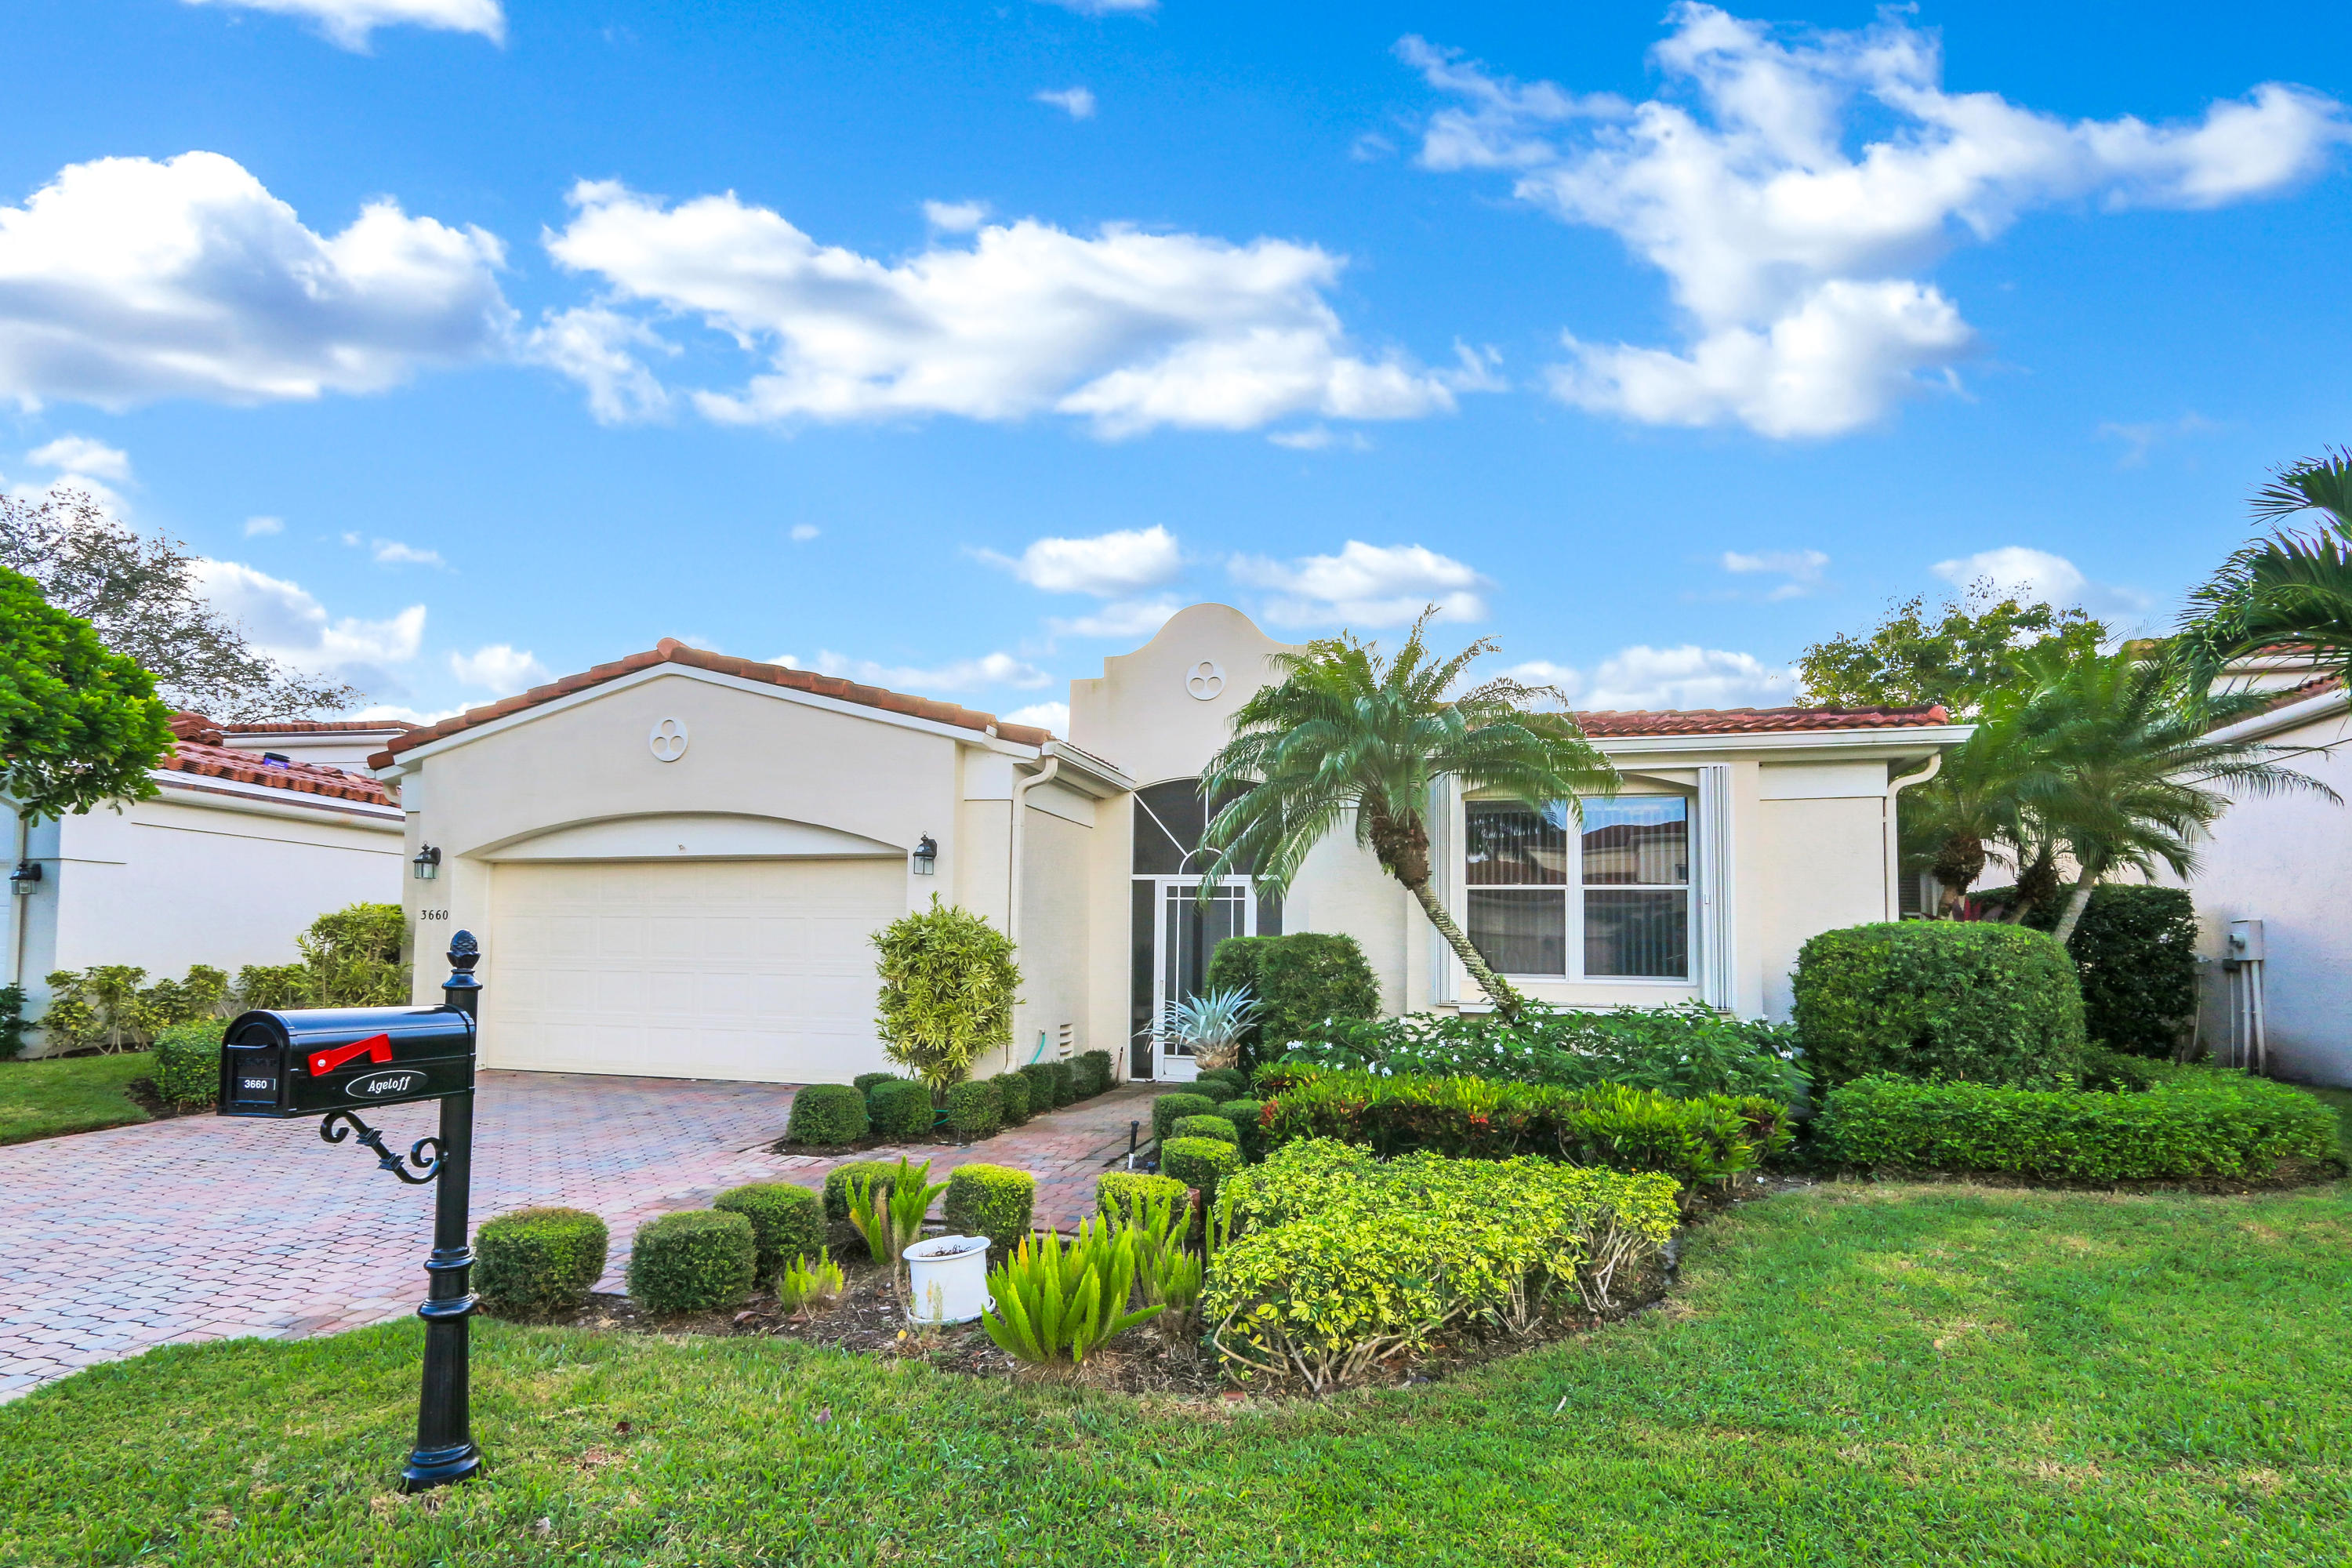 New Home for sale at 3660 Northwind Court in Jupiter